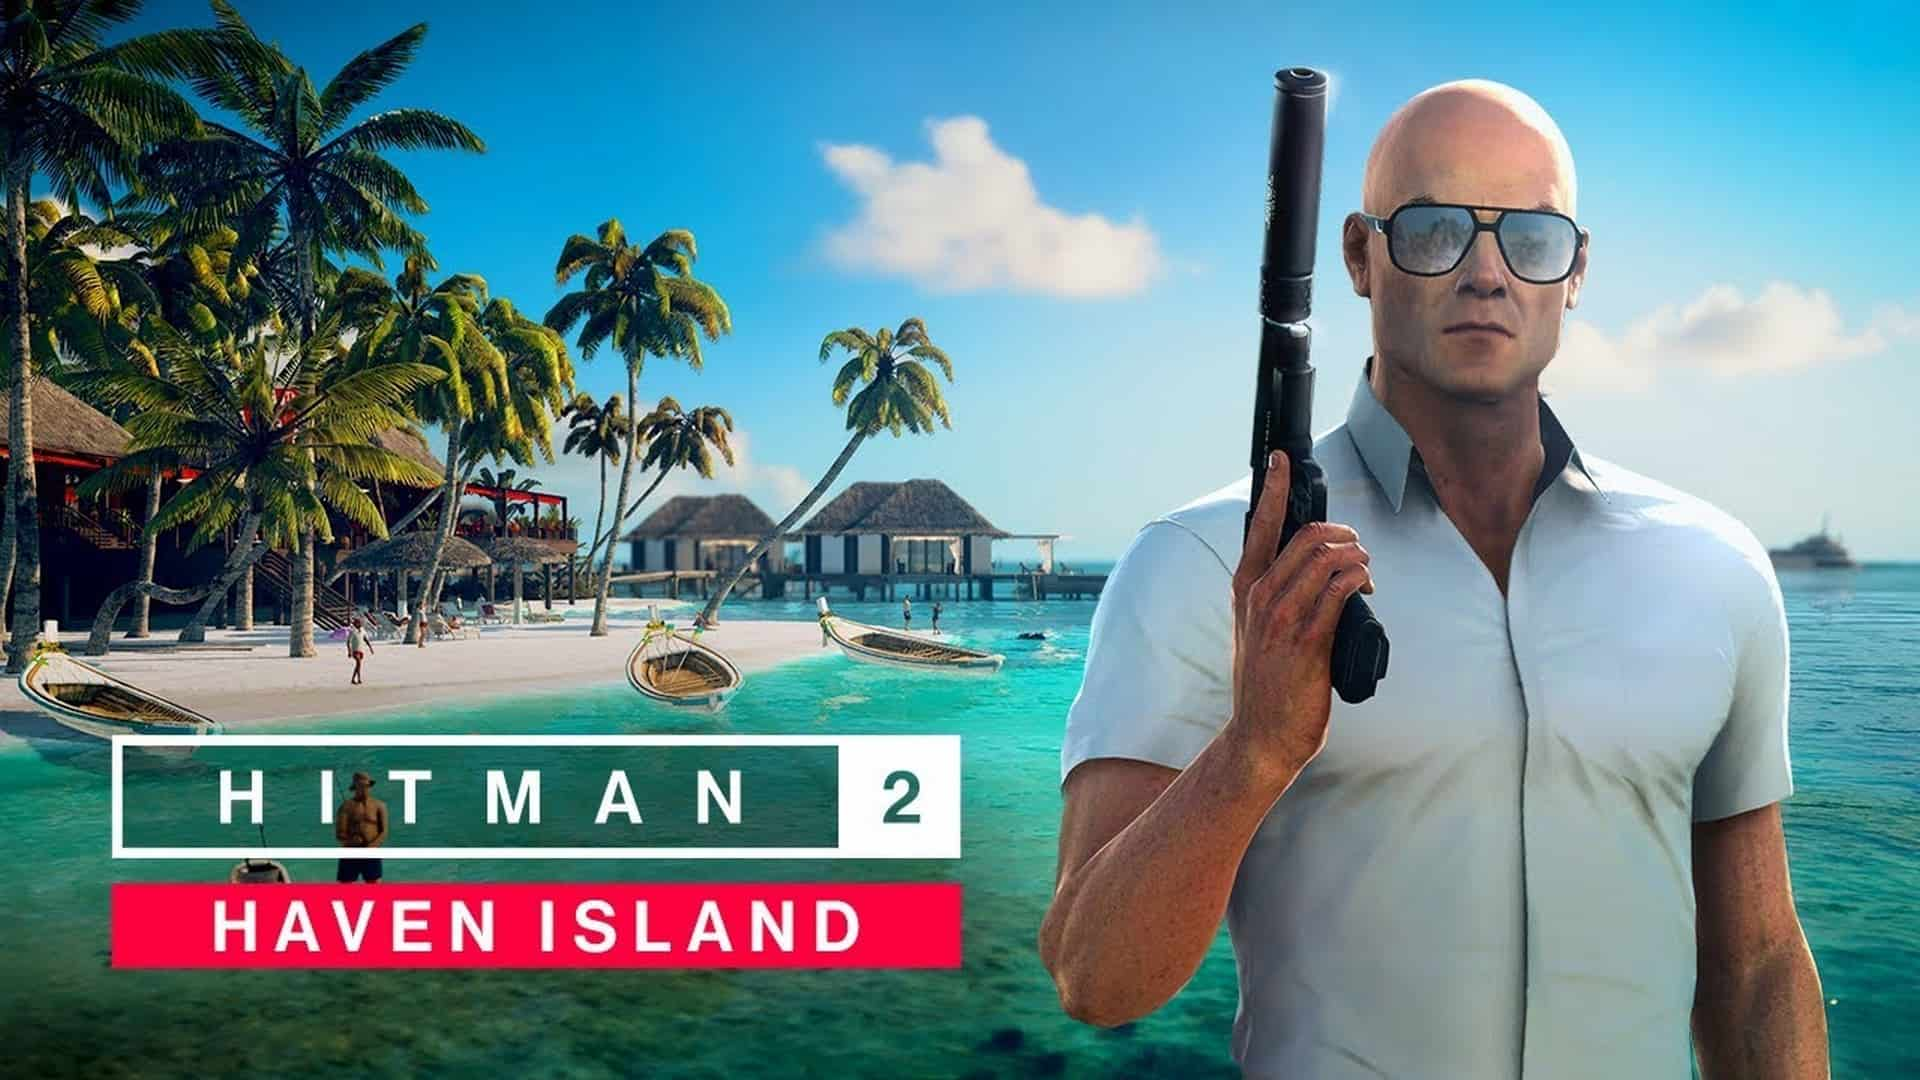 New HITMAN 2 Trailer Showcases The Tropical (and Deadly) Beaches of Haven Island (Maldives)